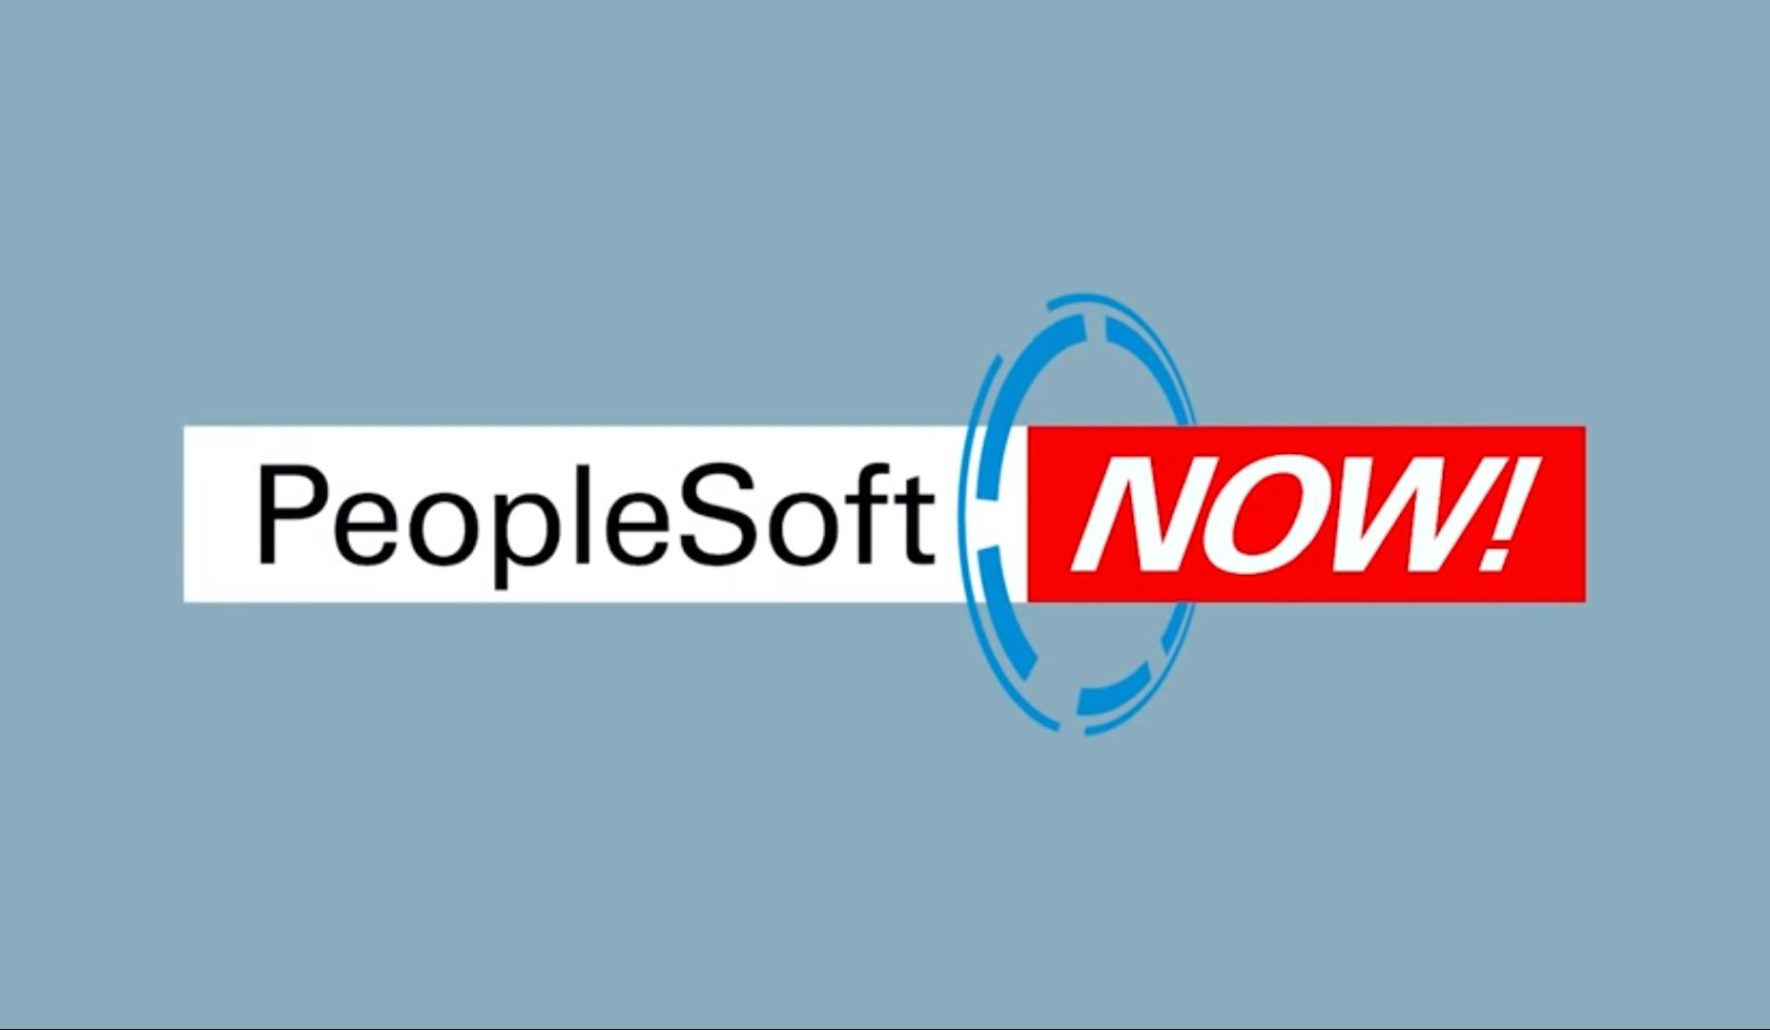 PeopleSoft-Now